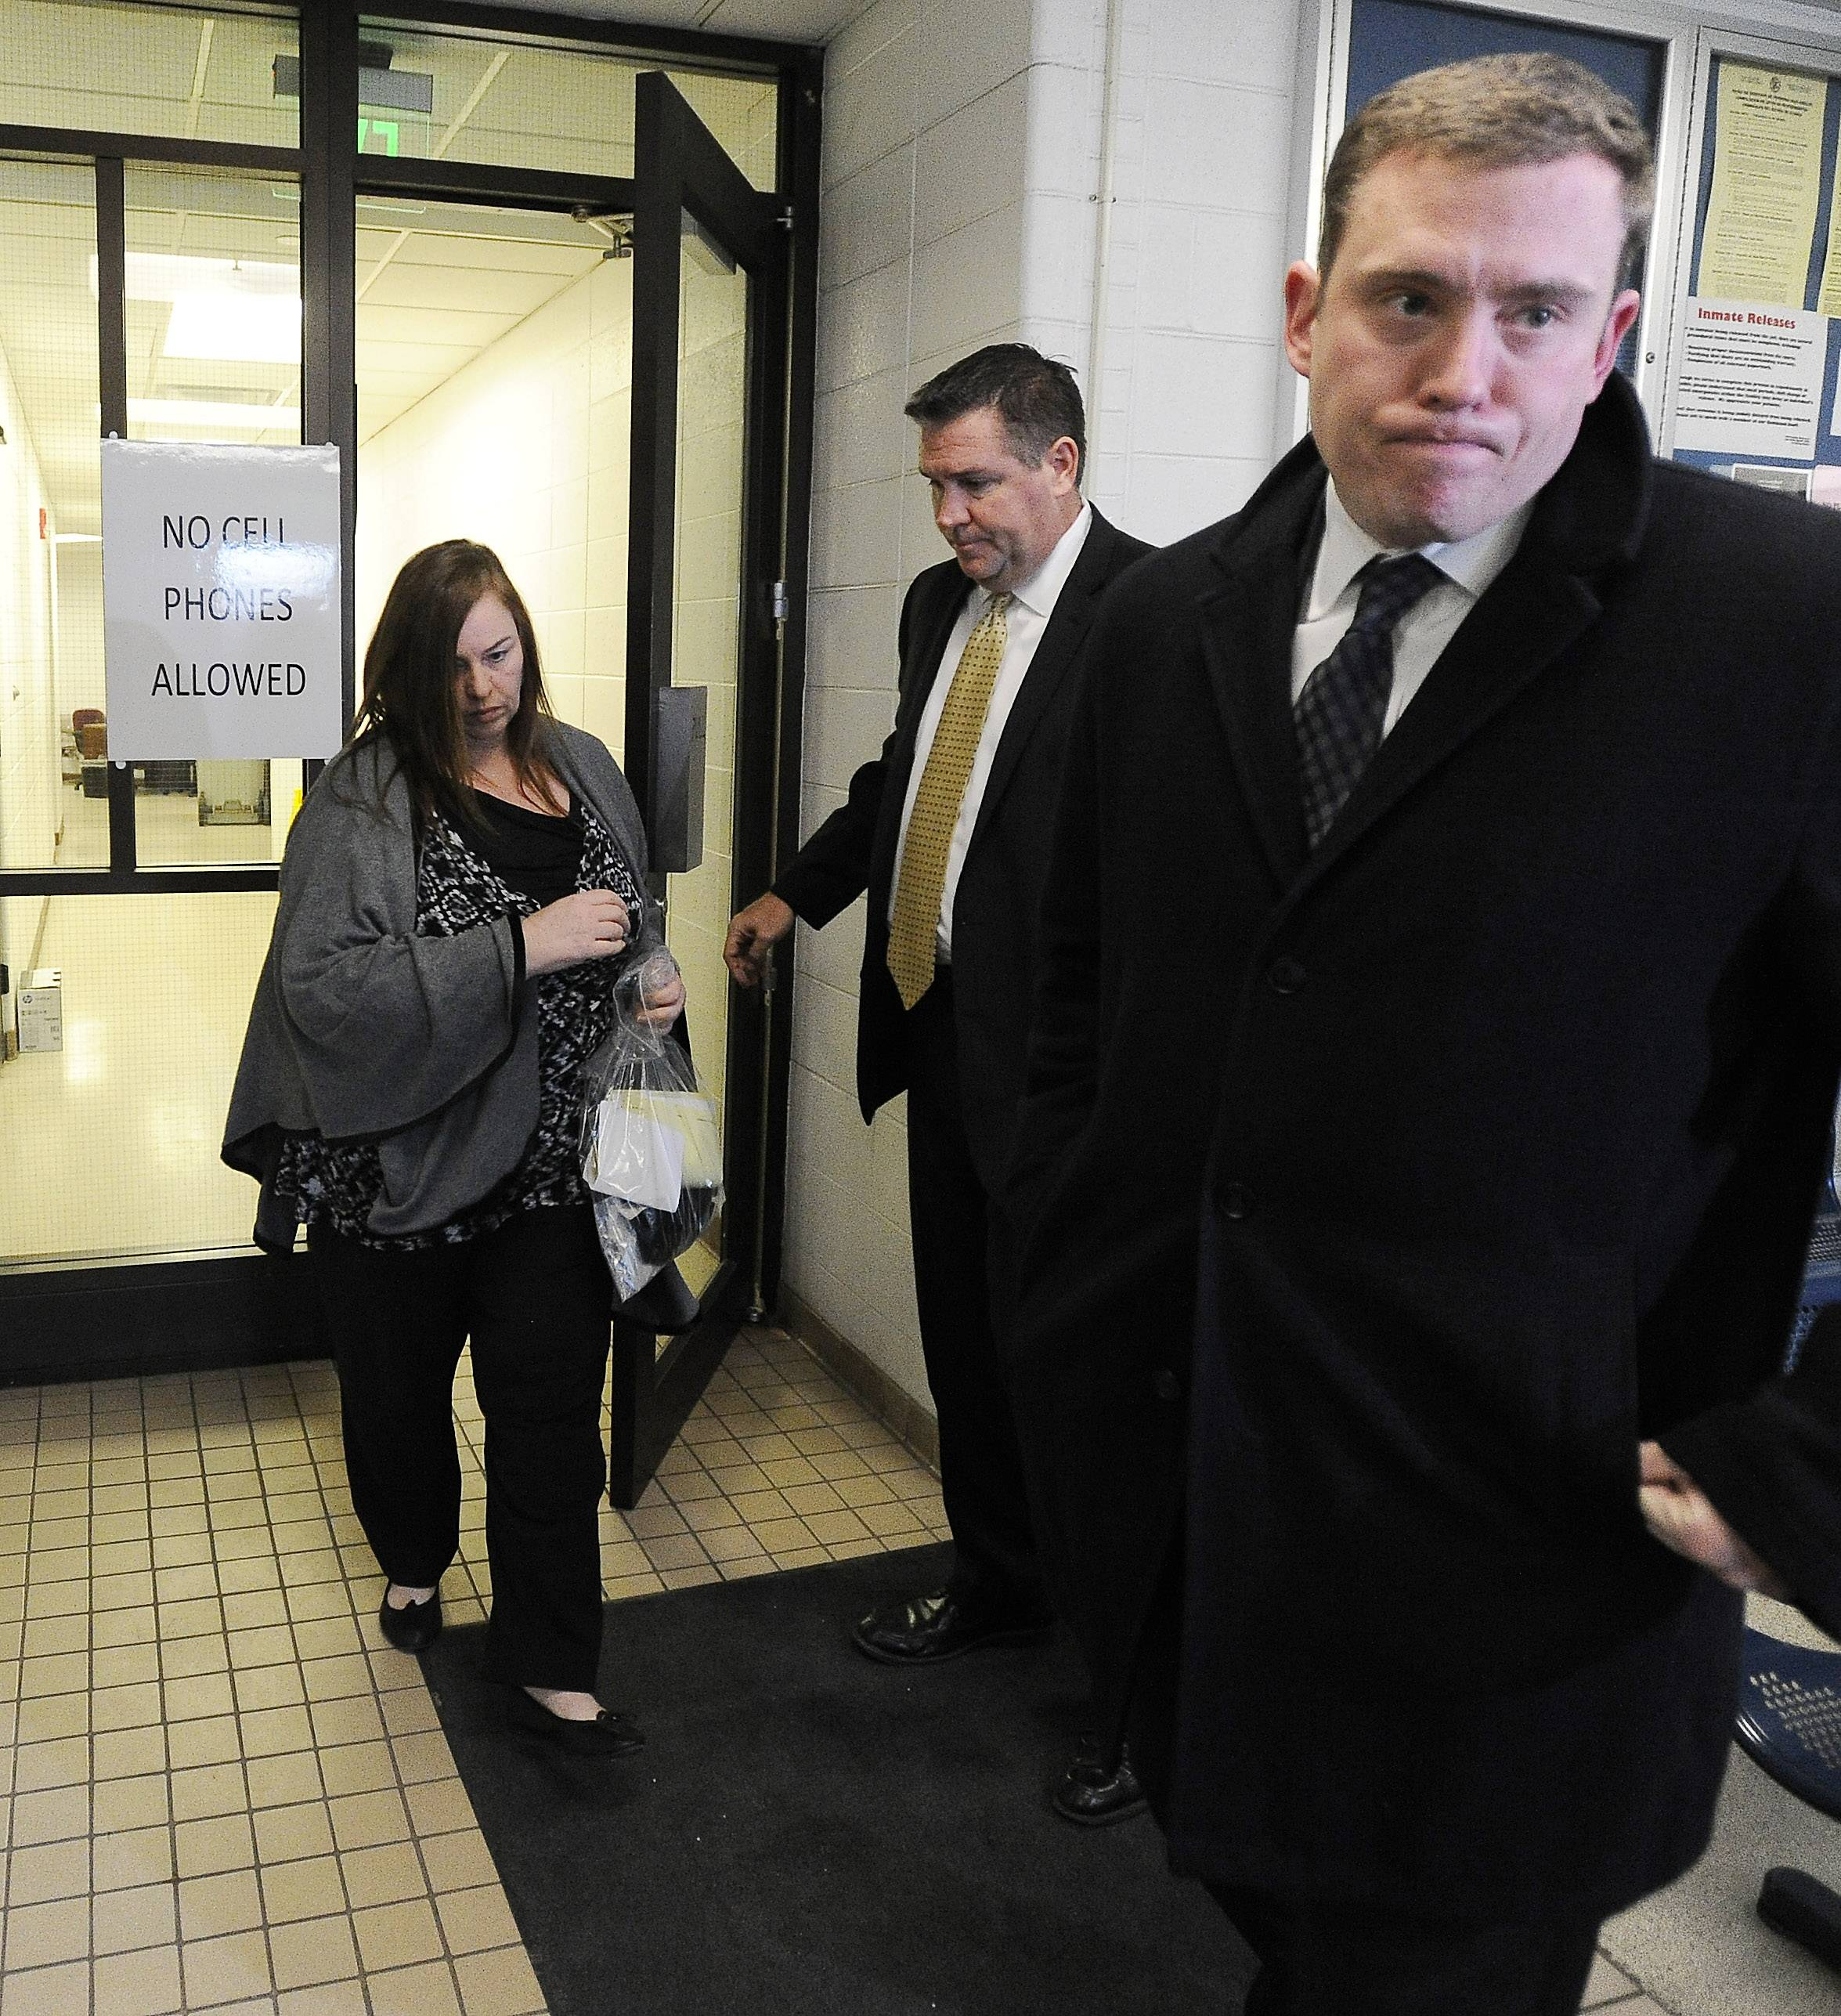 Melodie Gliniewicz is greeted by her lawyer after posting bail Wednesday at the Lake County sheriff's office in Waukegan.